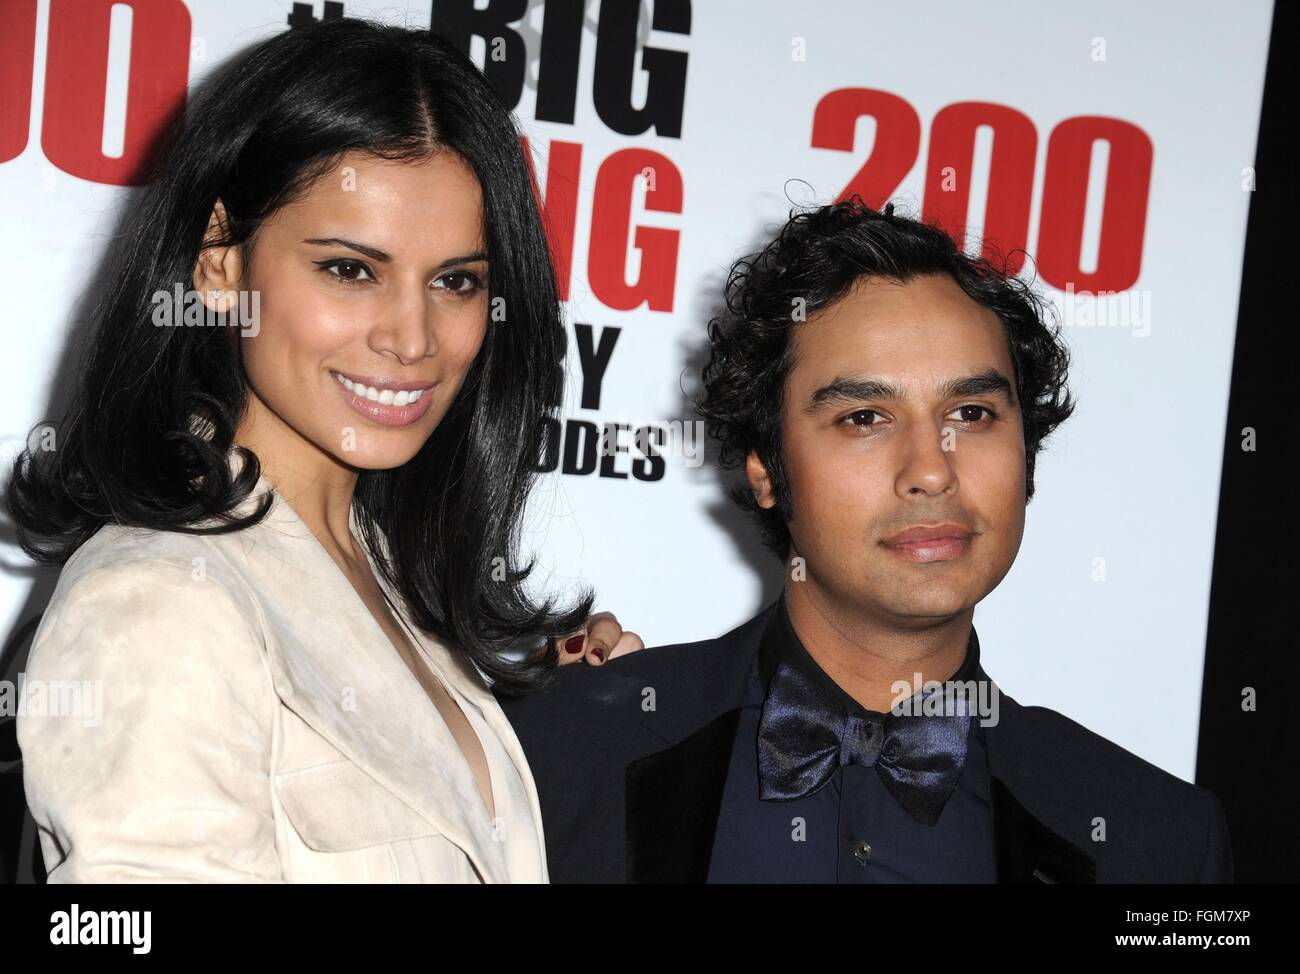 Neha Kapur Stock Photos Amp Neha Kapur Stock Images Alamy